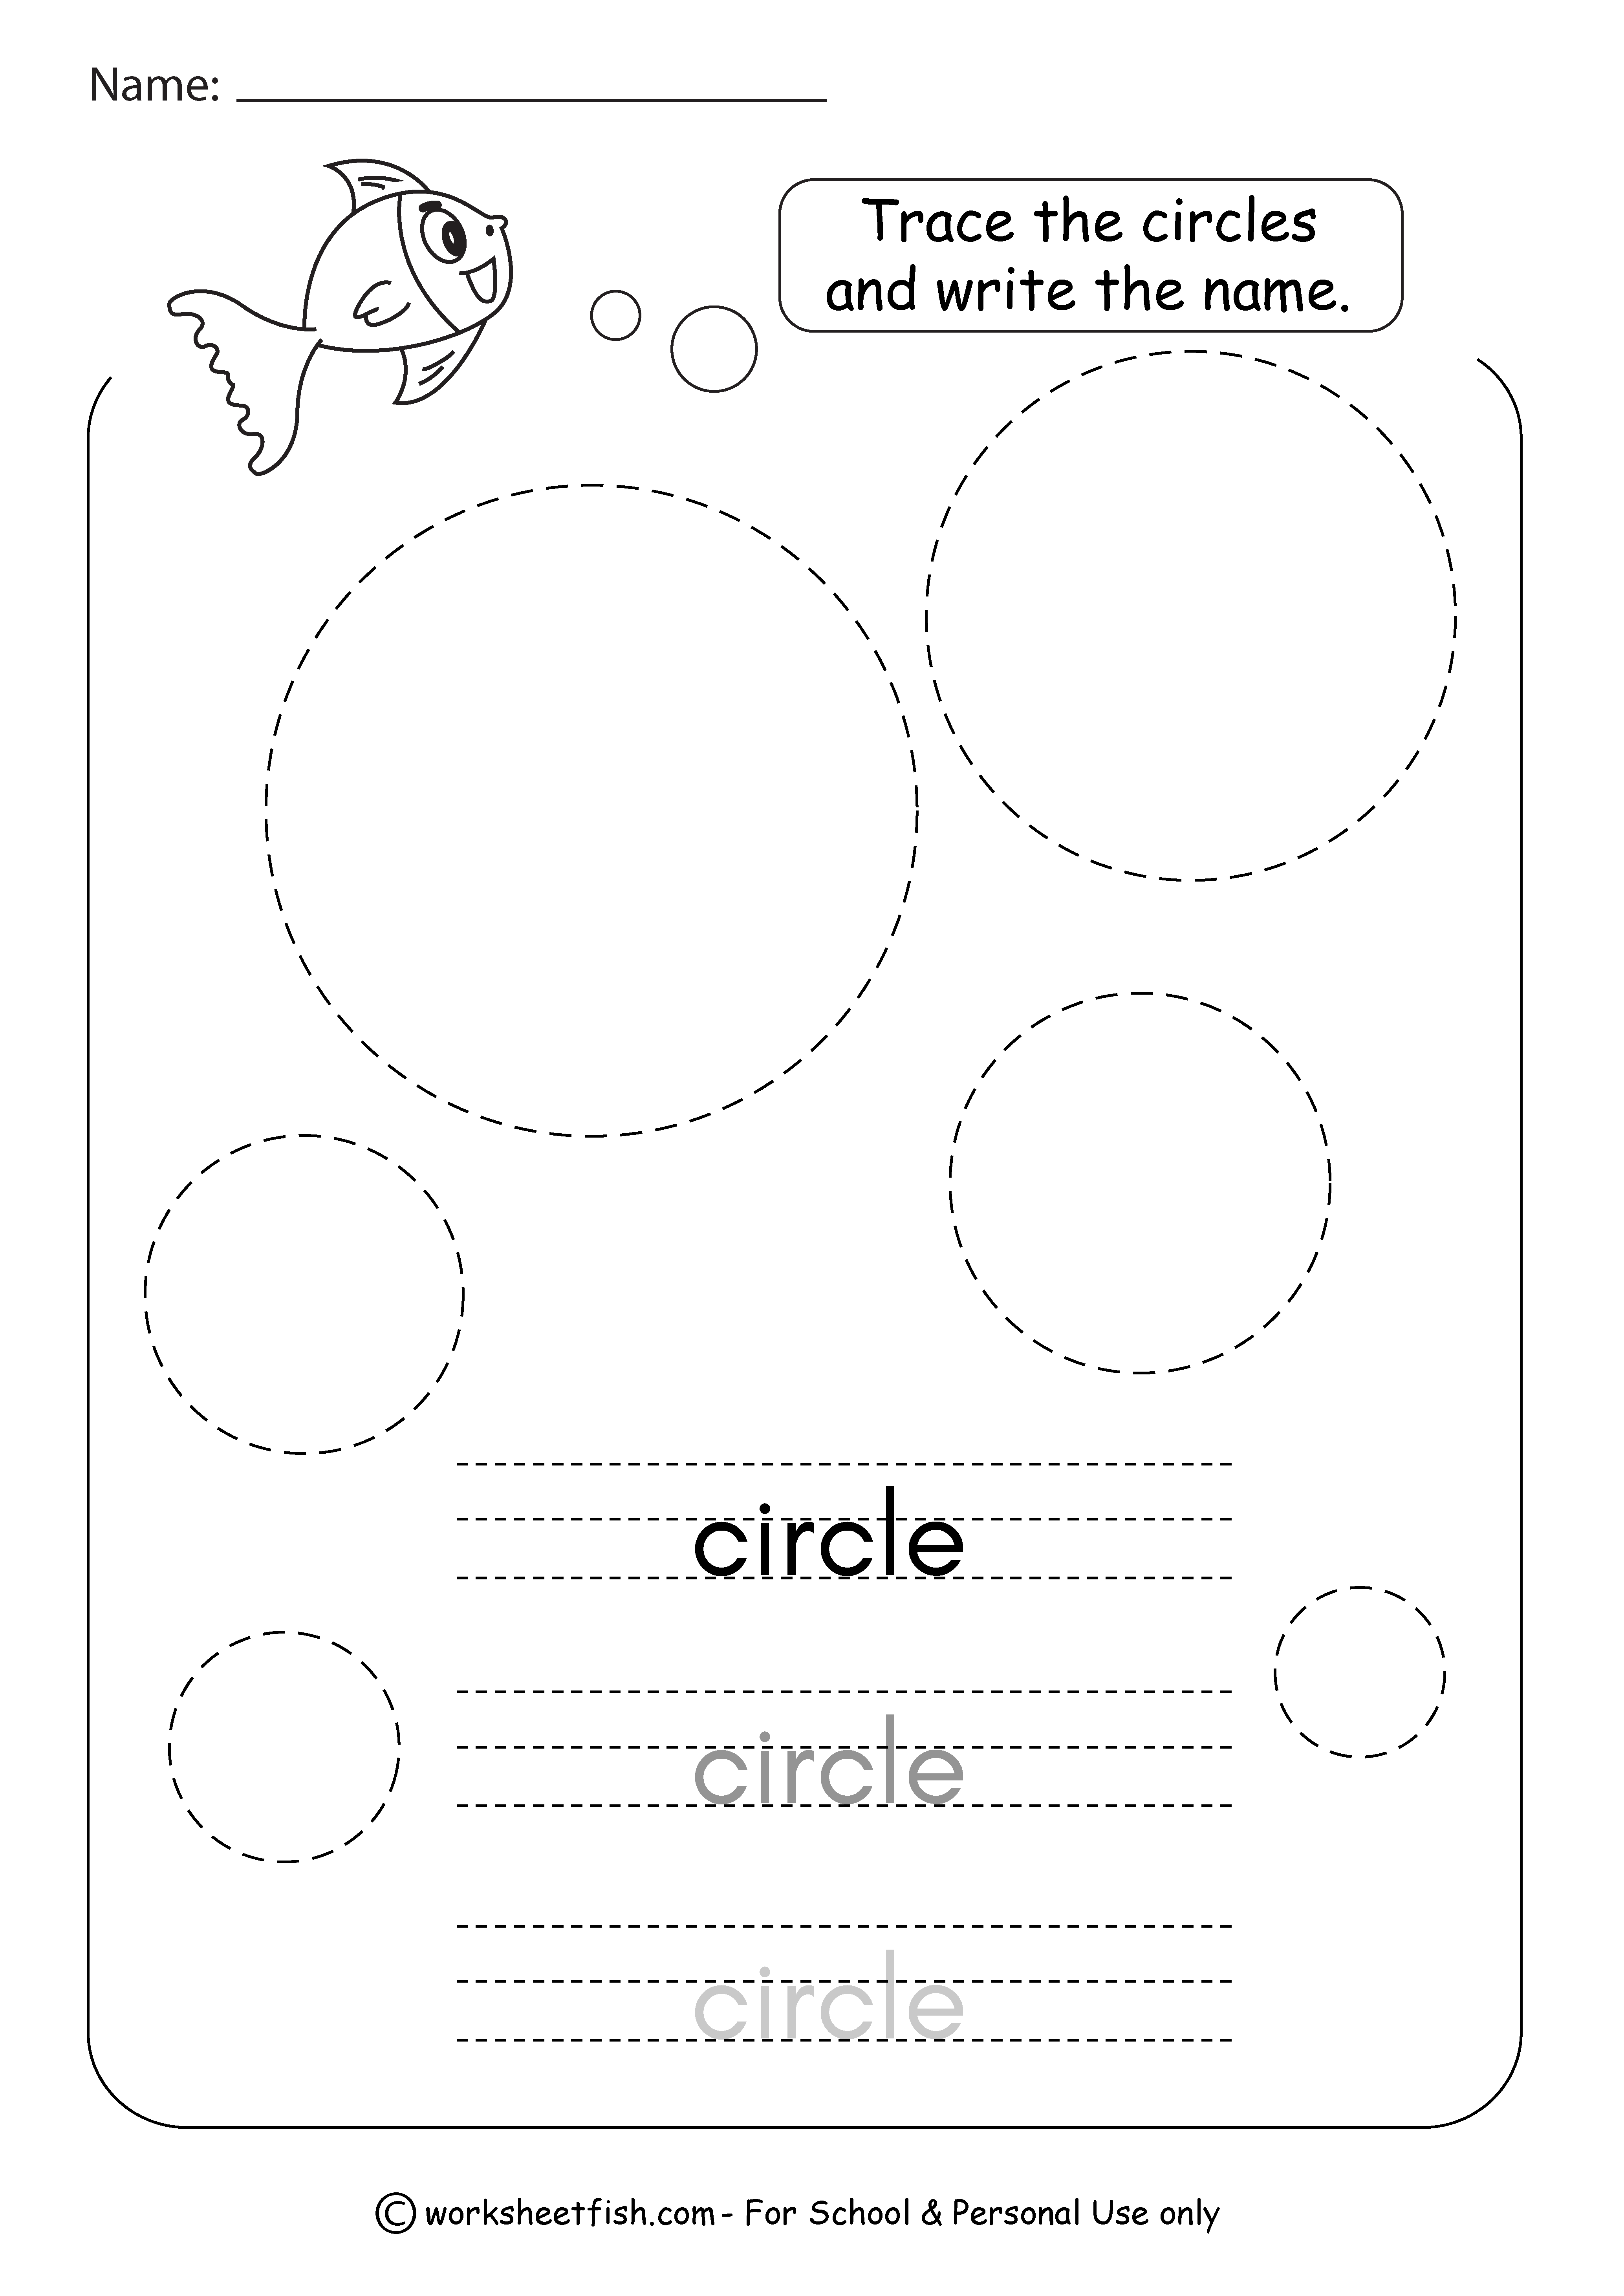 Tracing Shapes Worksheets - Square, Circle, Triangle